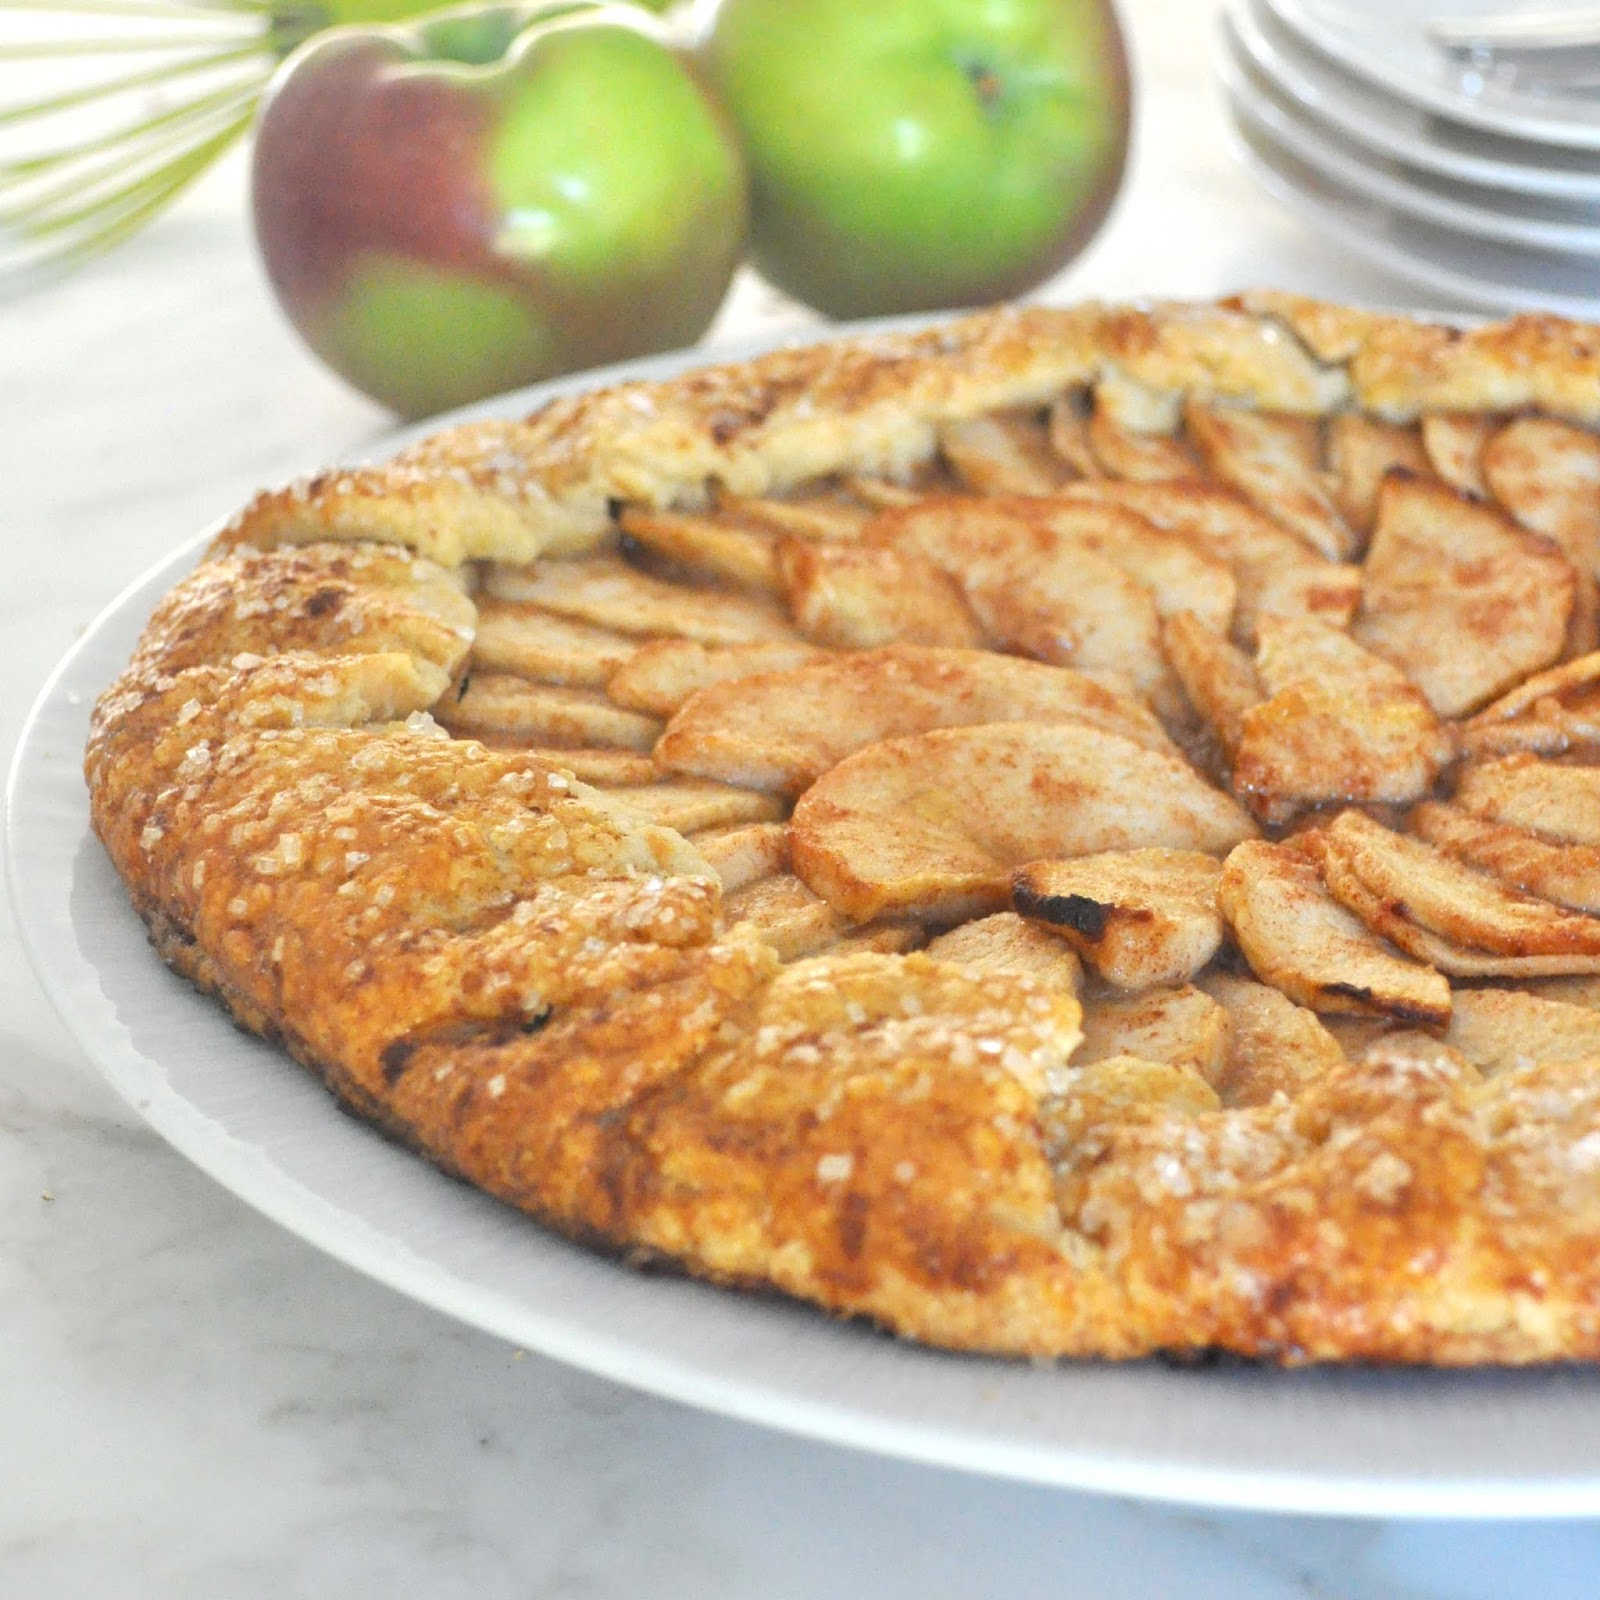 Cooking with Manuela: Rustic Apple Crostata